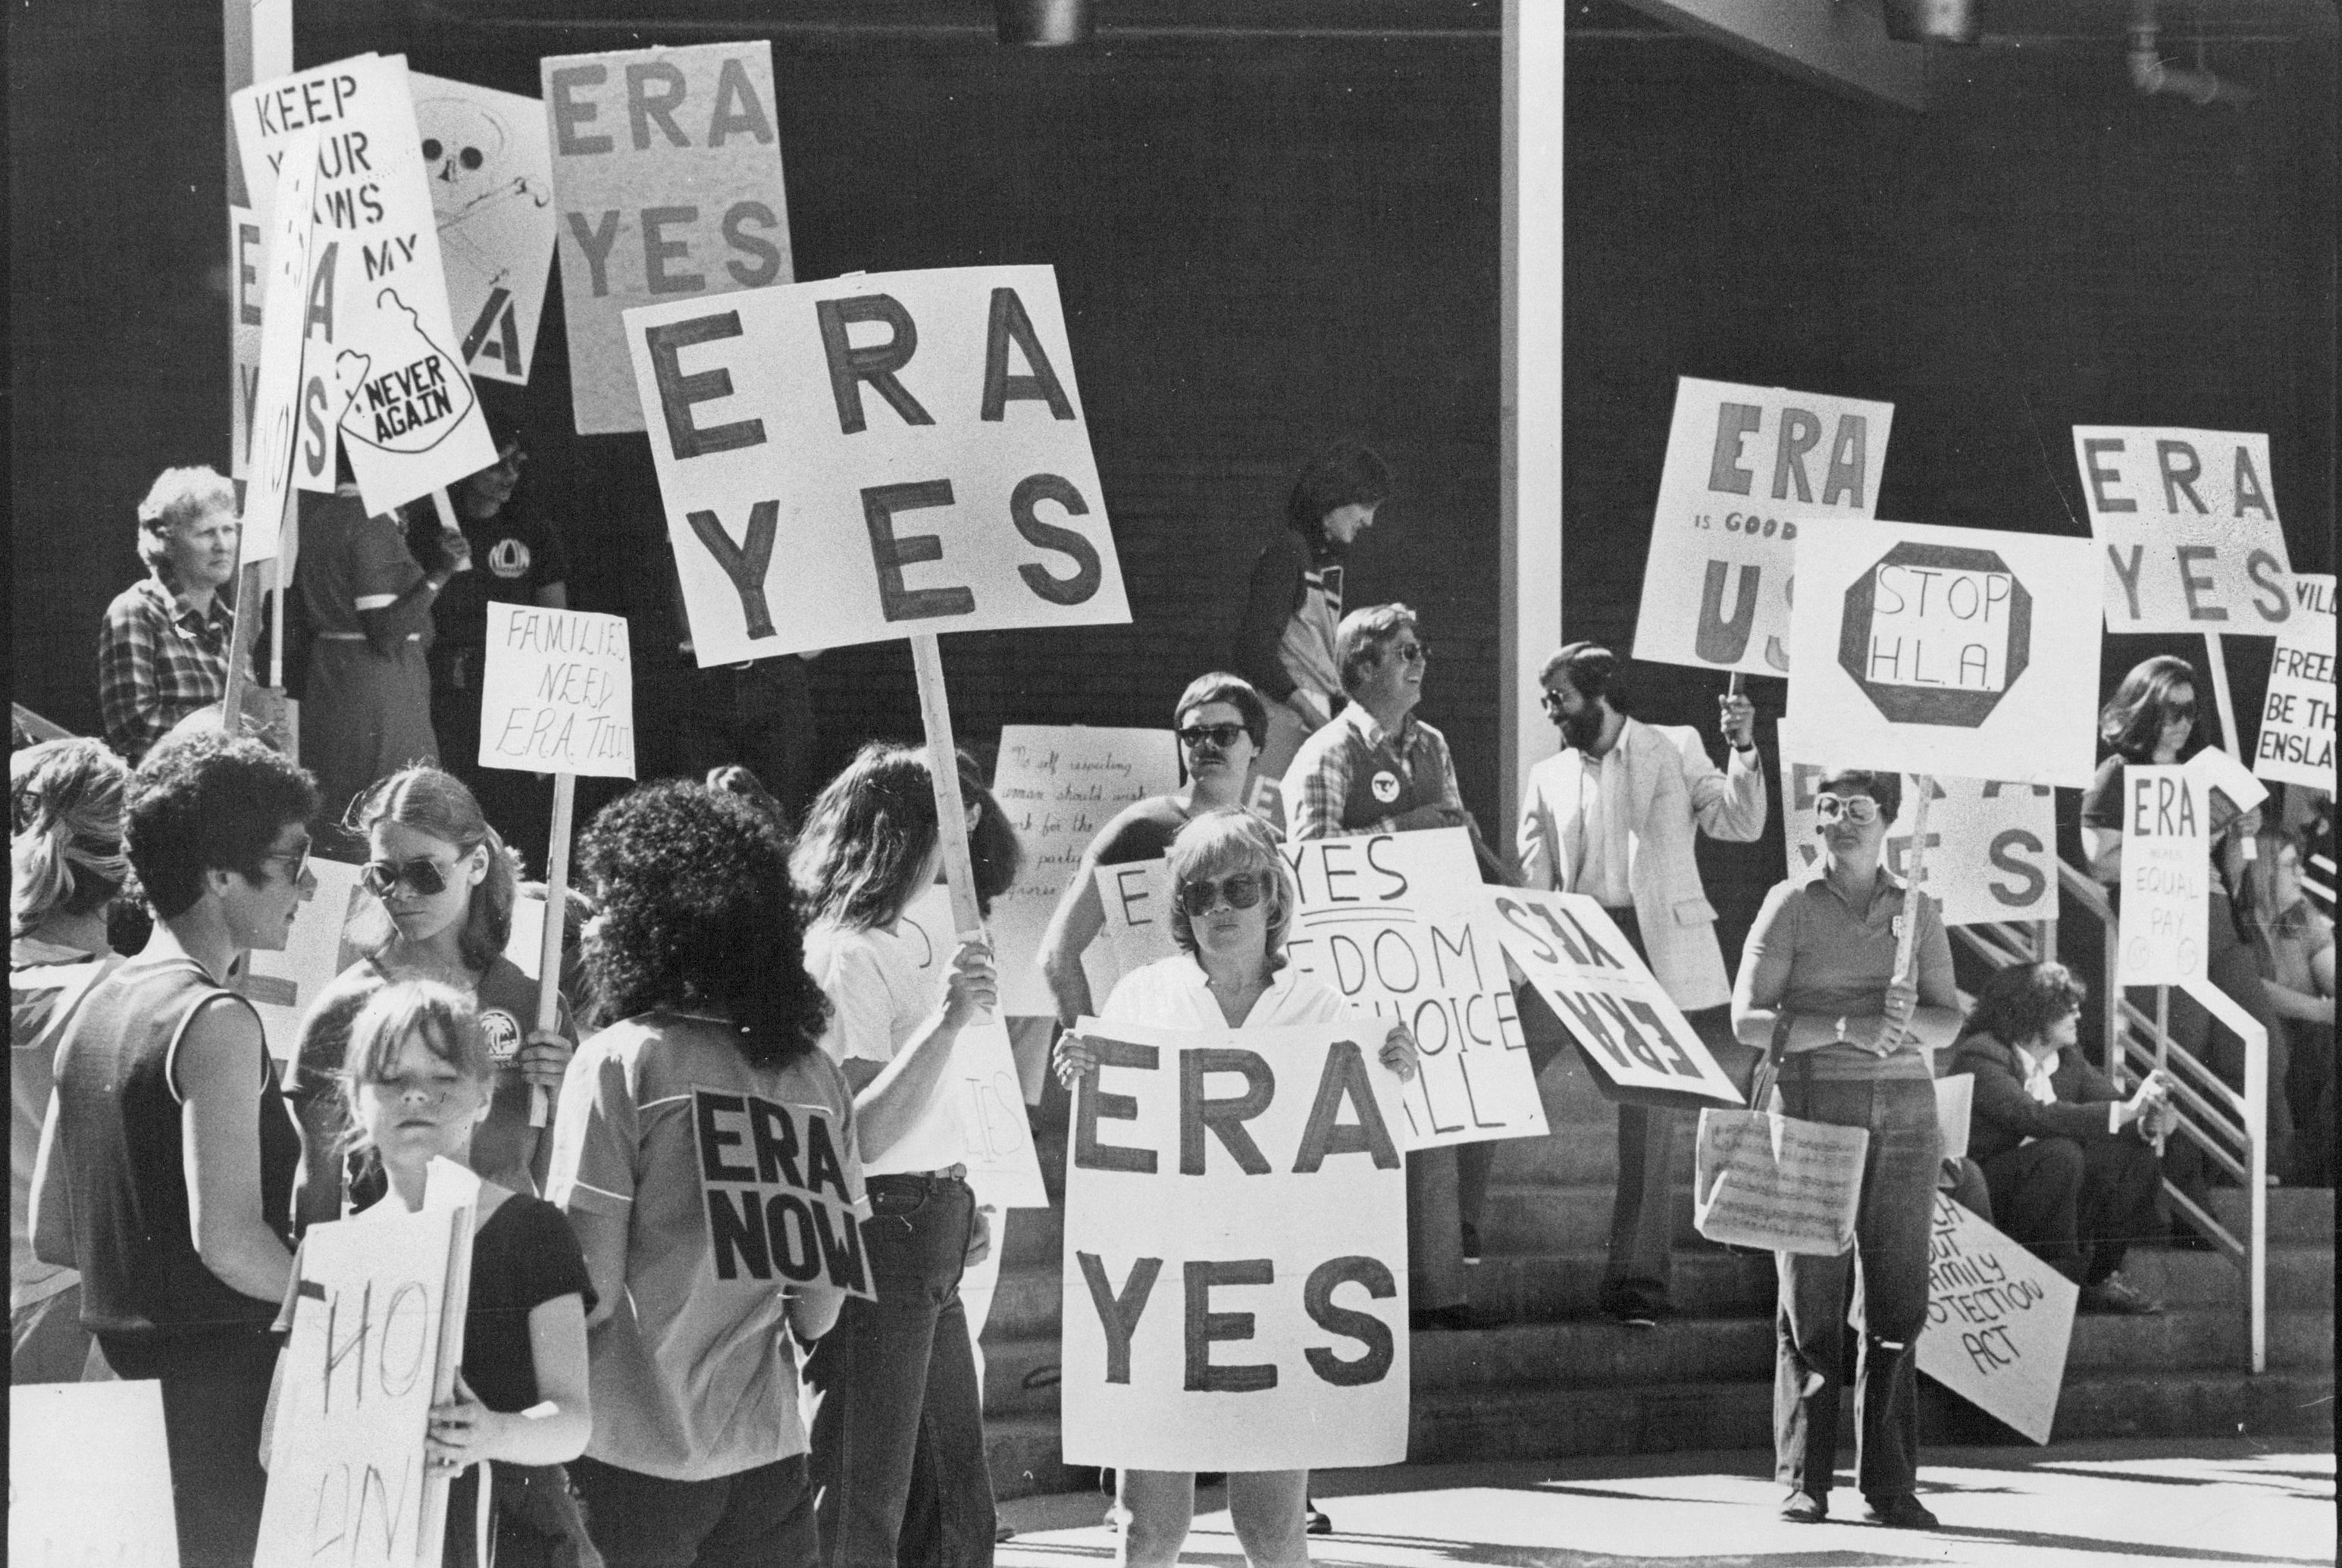 APR 25 1981, APR 27 1981; Picketes Supported Equal Rights Amendment Protested Views being discussed at Pro- Family Meet.;  (Photo By Dave Buresh/The Denver Post via Getty Images)